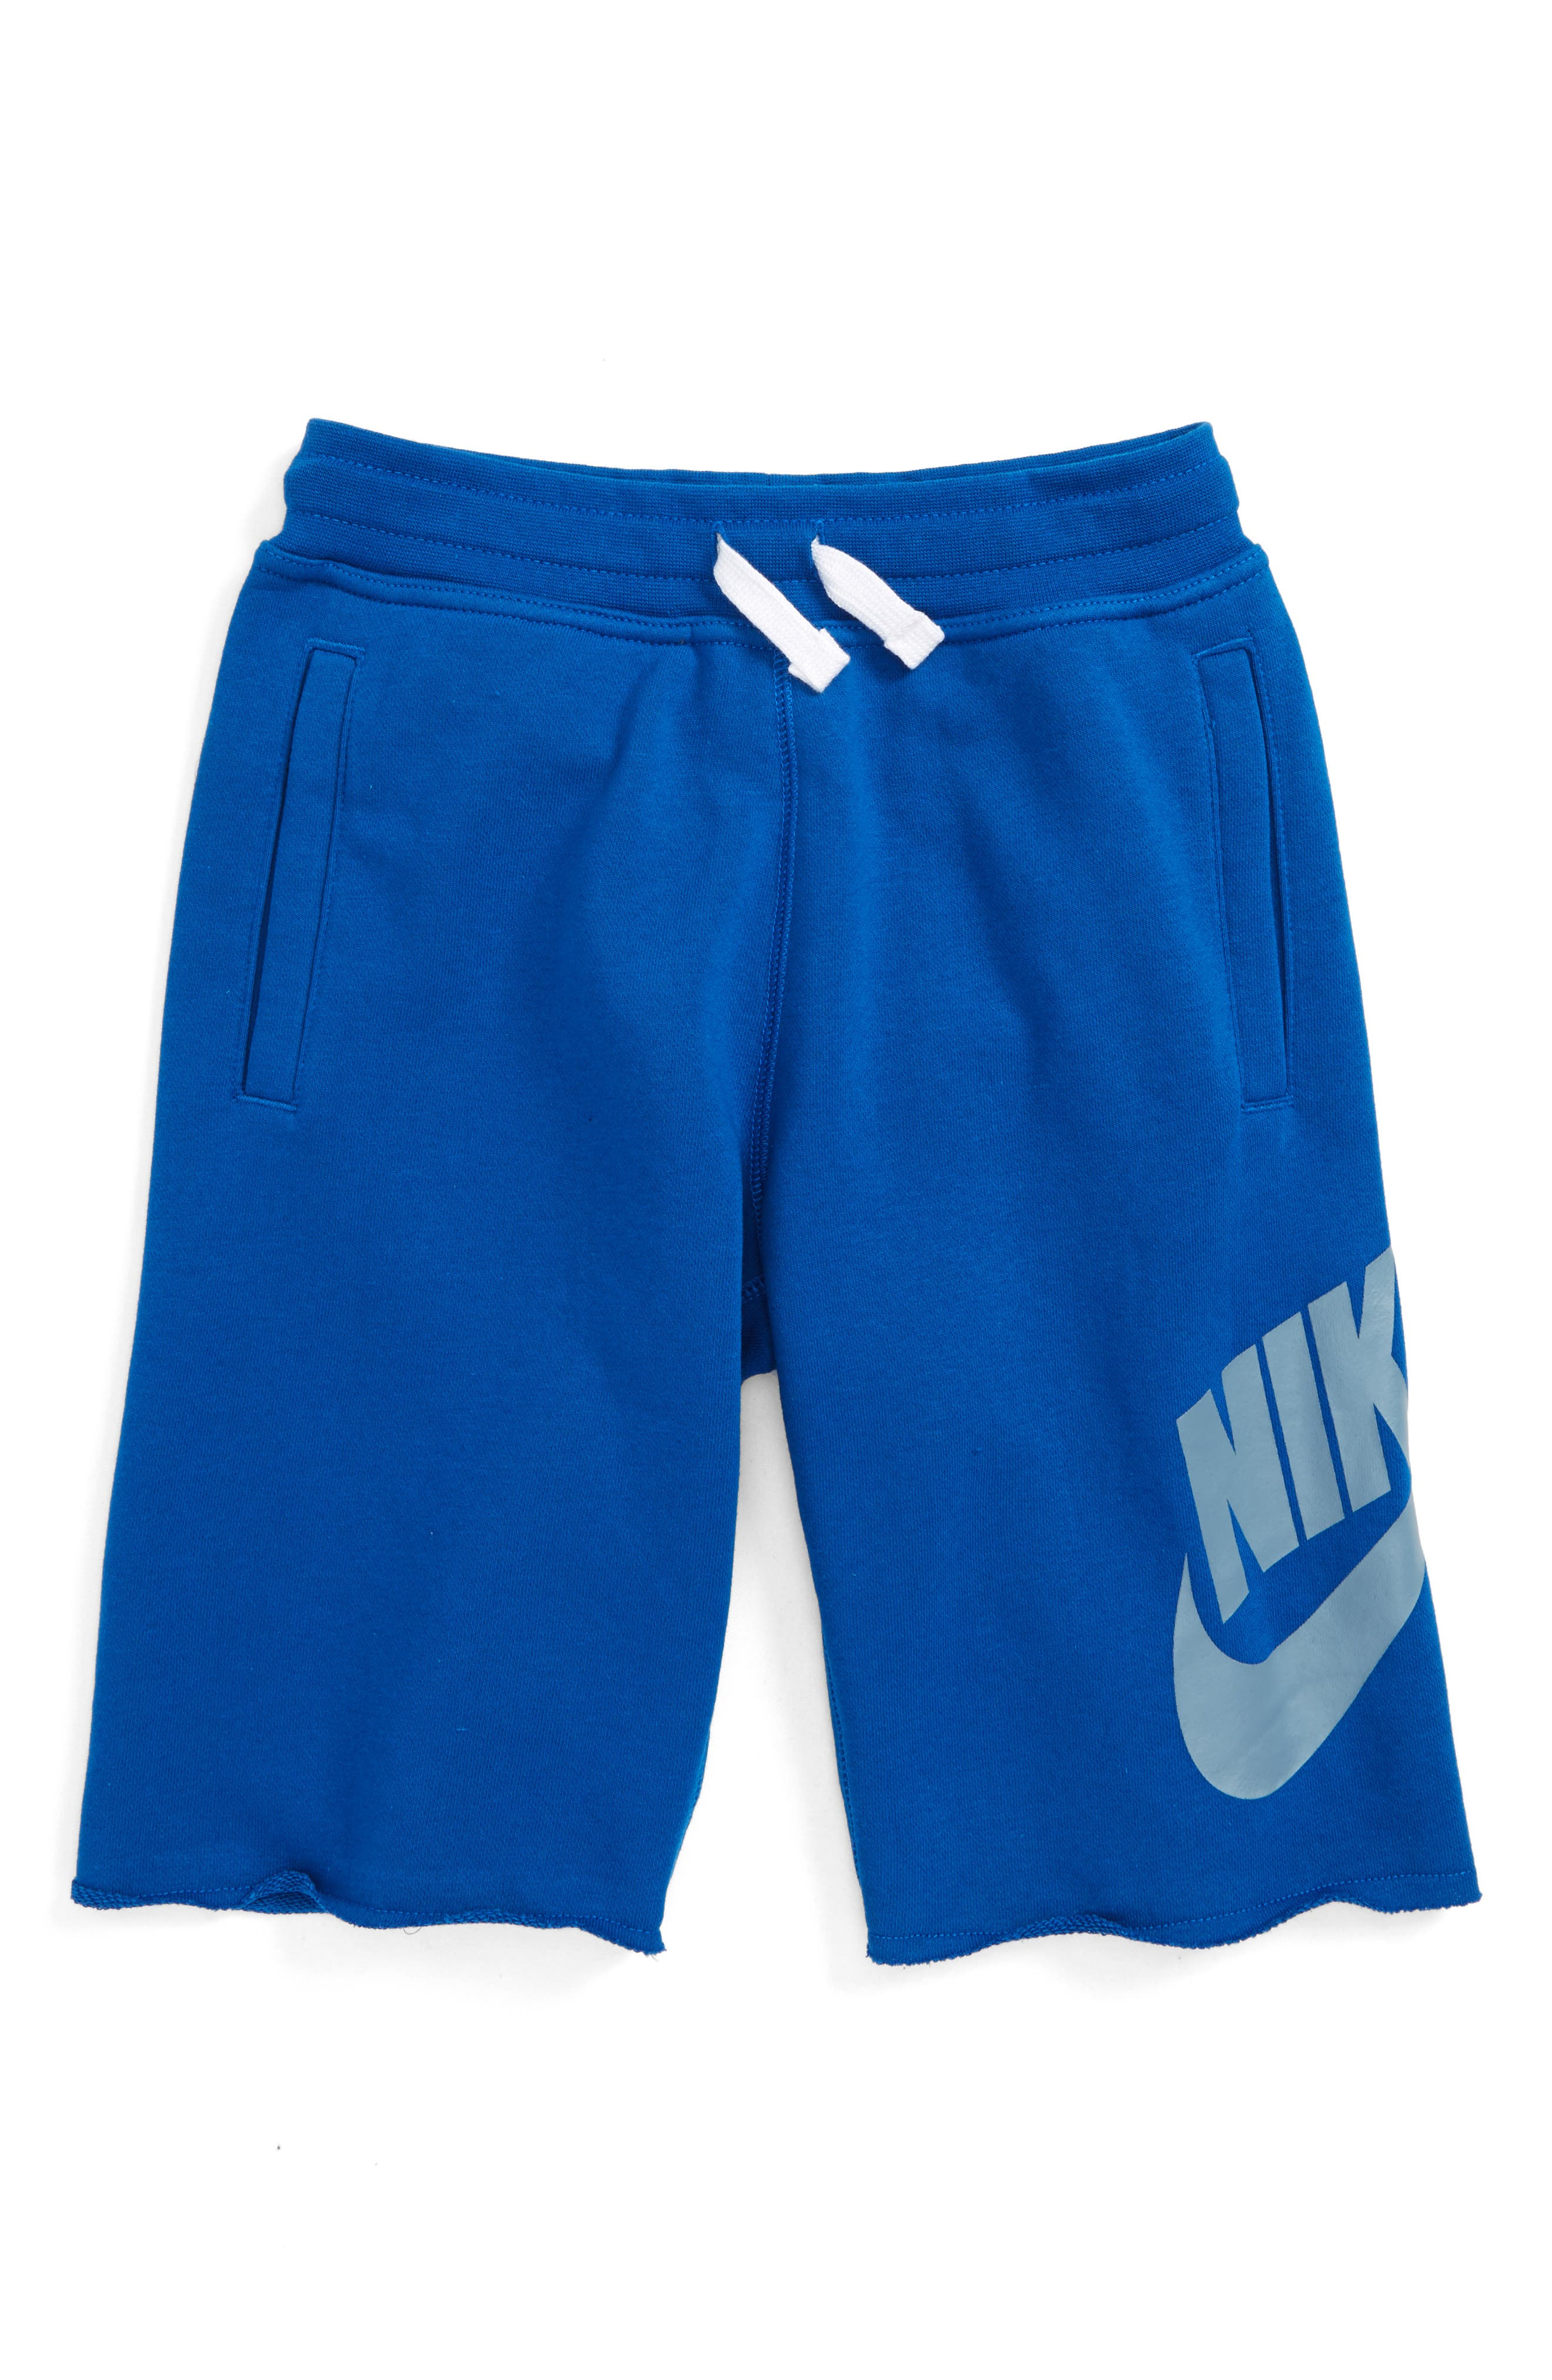 'Alumni' French Terry Knit Shorts,                         Main,                         color, Blujay